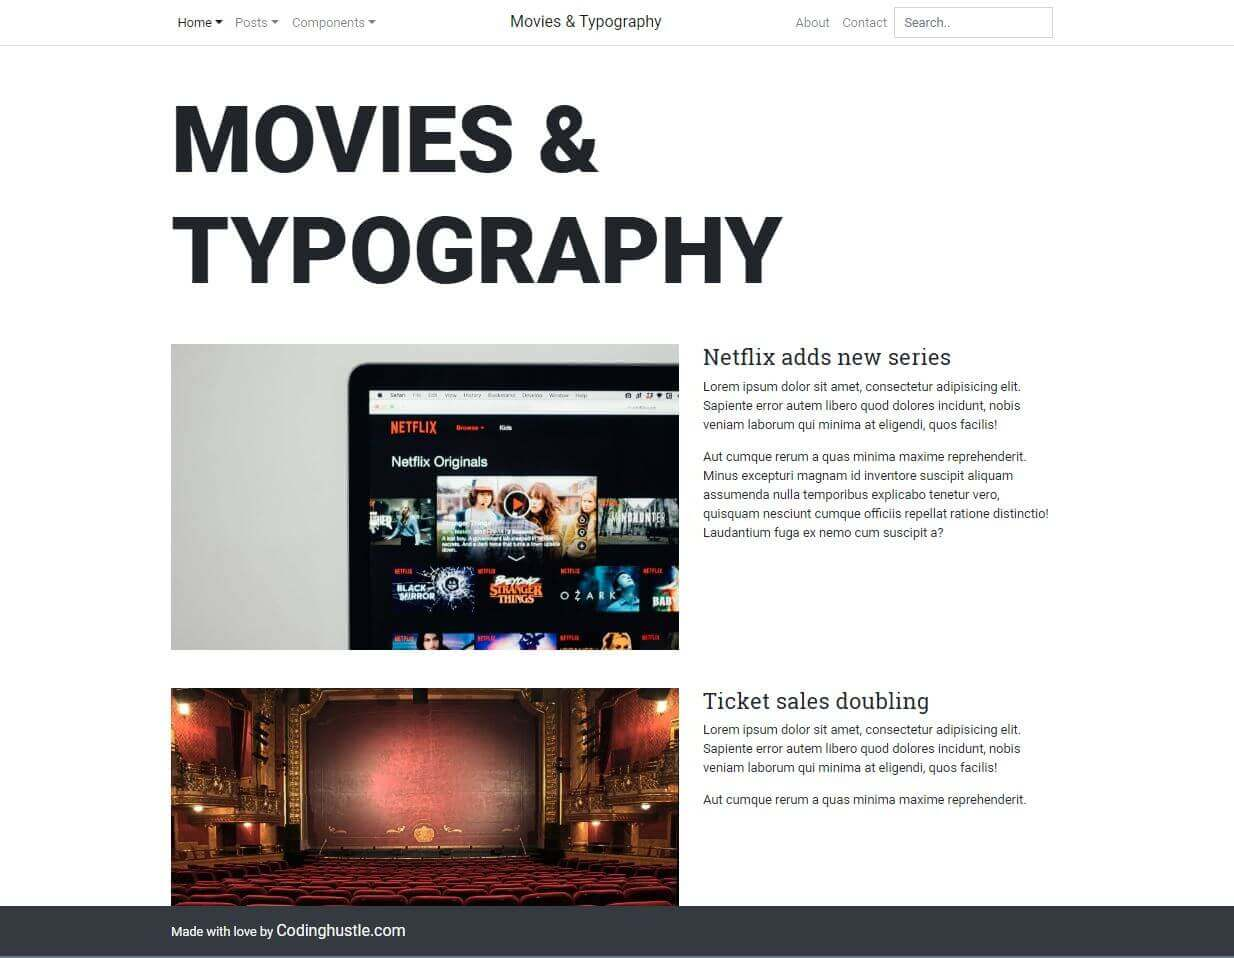 The completed Movies and Typography layout